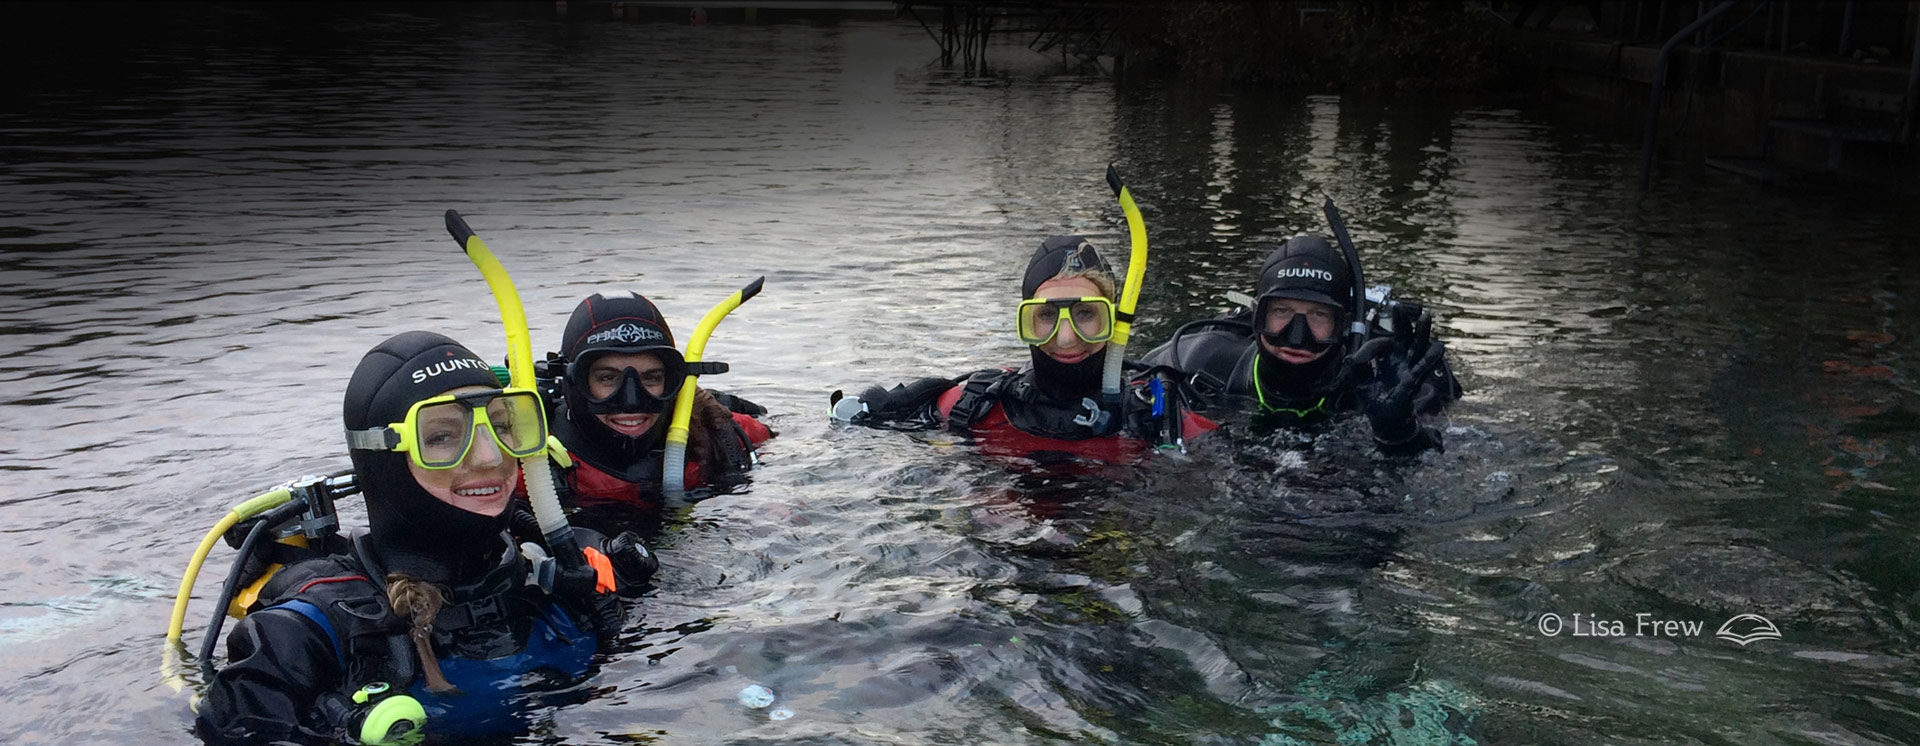 Image of divers on Dive South scuba diving courses